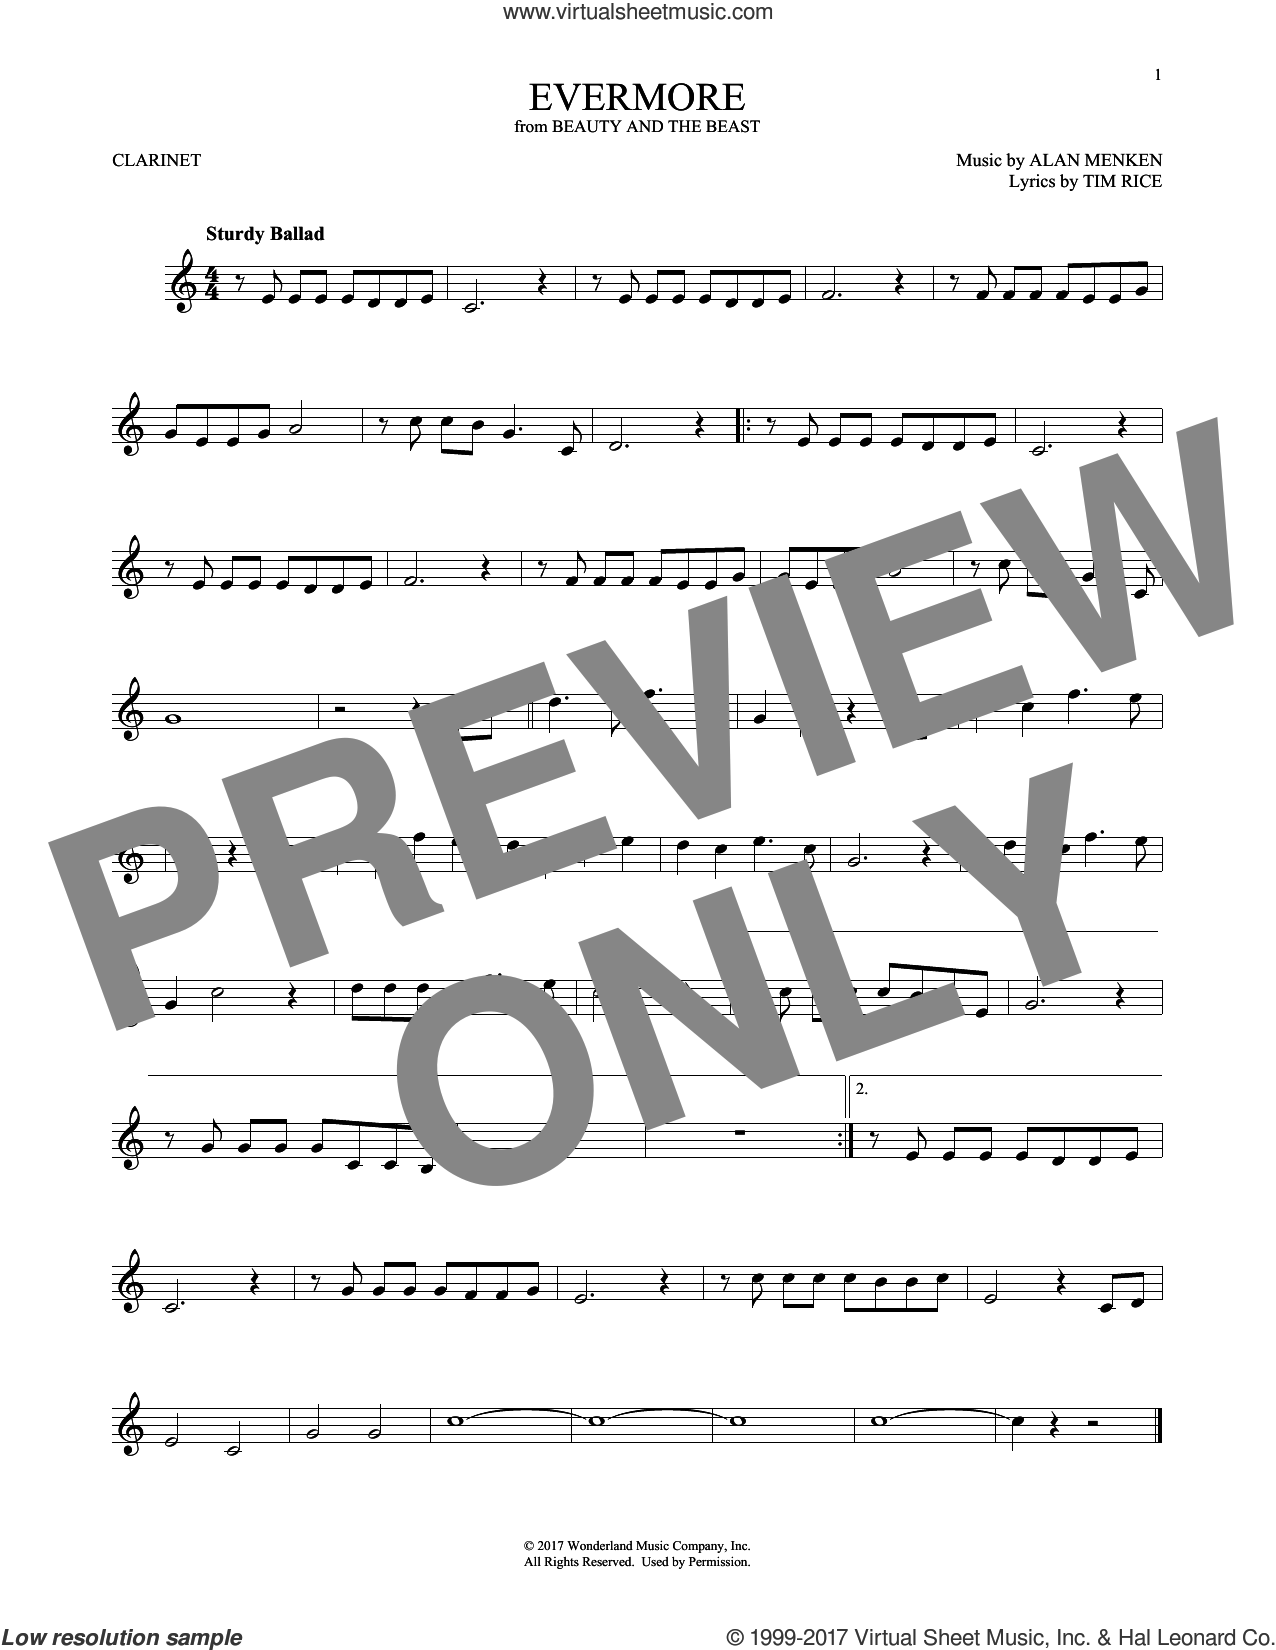 Evermore sheet music for clarinet solo by Josh Groban, Alan Menken and Tim Rice, intermediate skill level